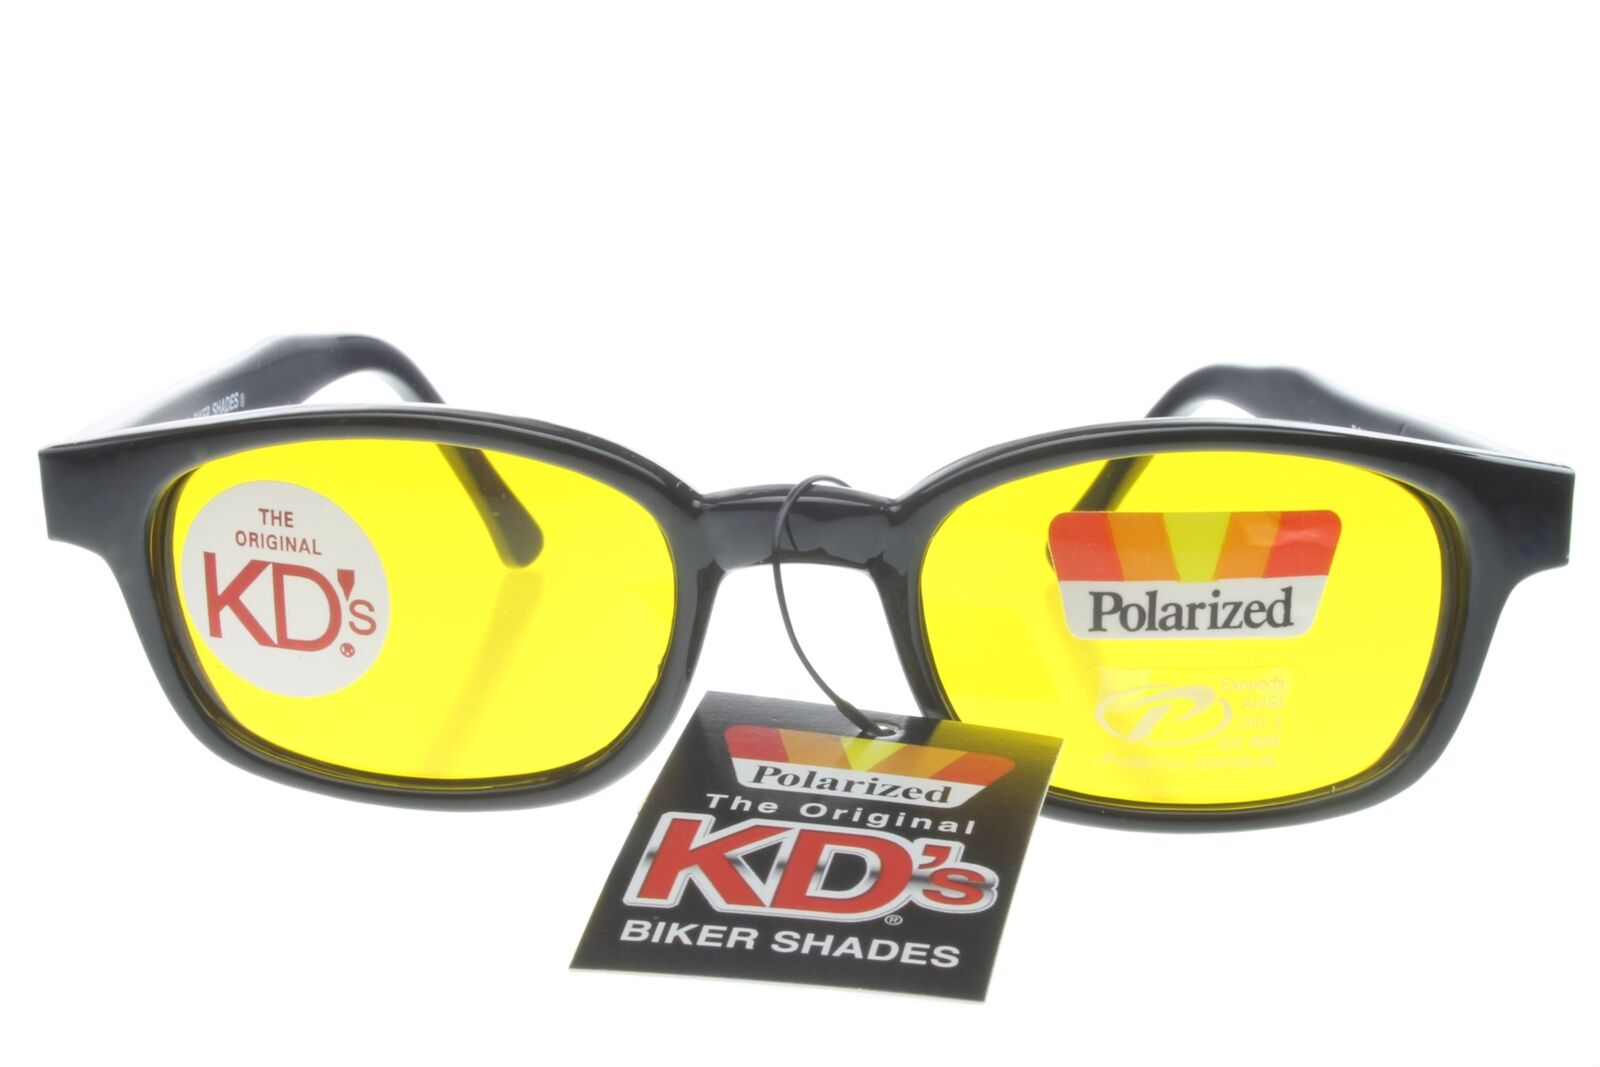 b3d57cfd1a79 Details about KD's Sunglasses Original Biker Shades Motorcycle Polarized  Black Yellow 20129